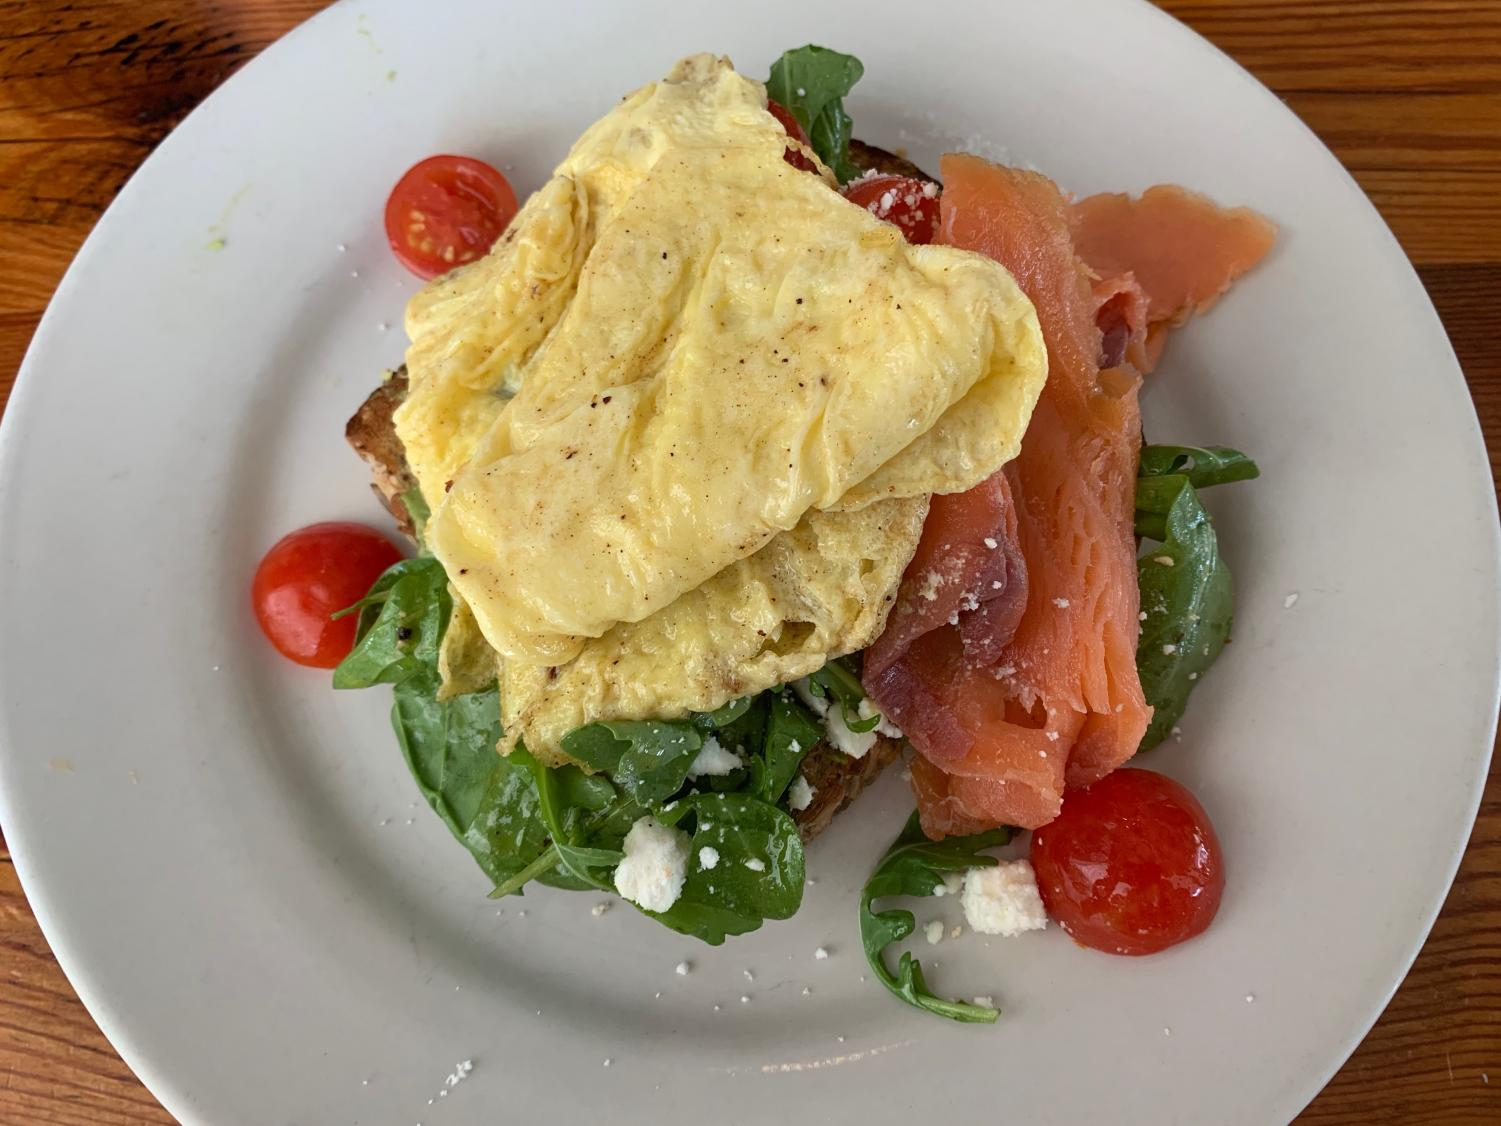 Satsuma's omelet with avocado toast and smoked salmon with tomatoes and spinach sits on a plate on a Sunday morning. This is a go-to for many restaurant patrons. Photo credit: Valerie Cronenbold